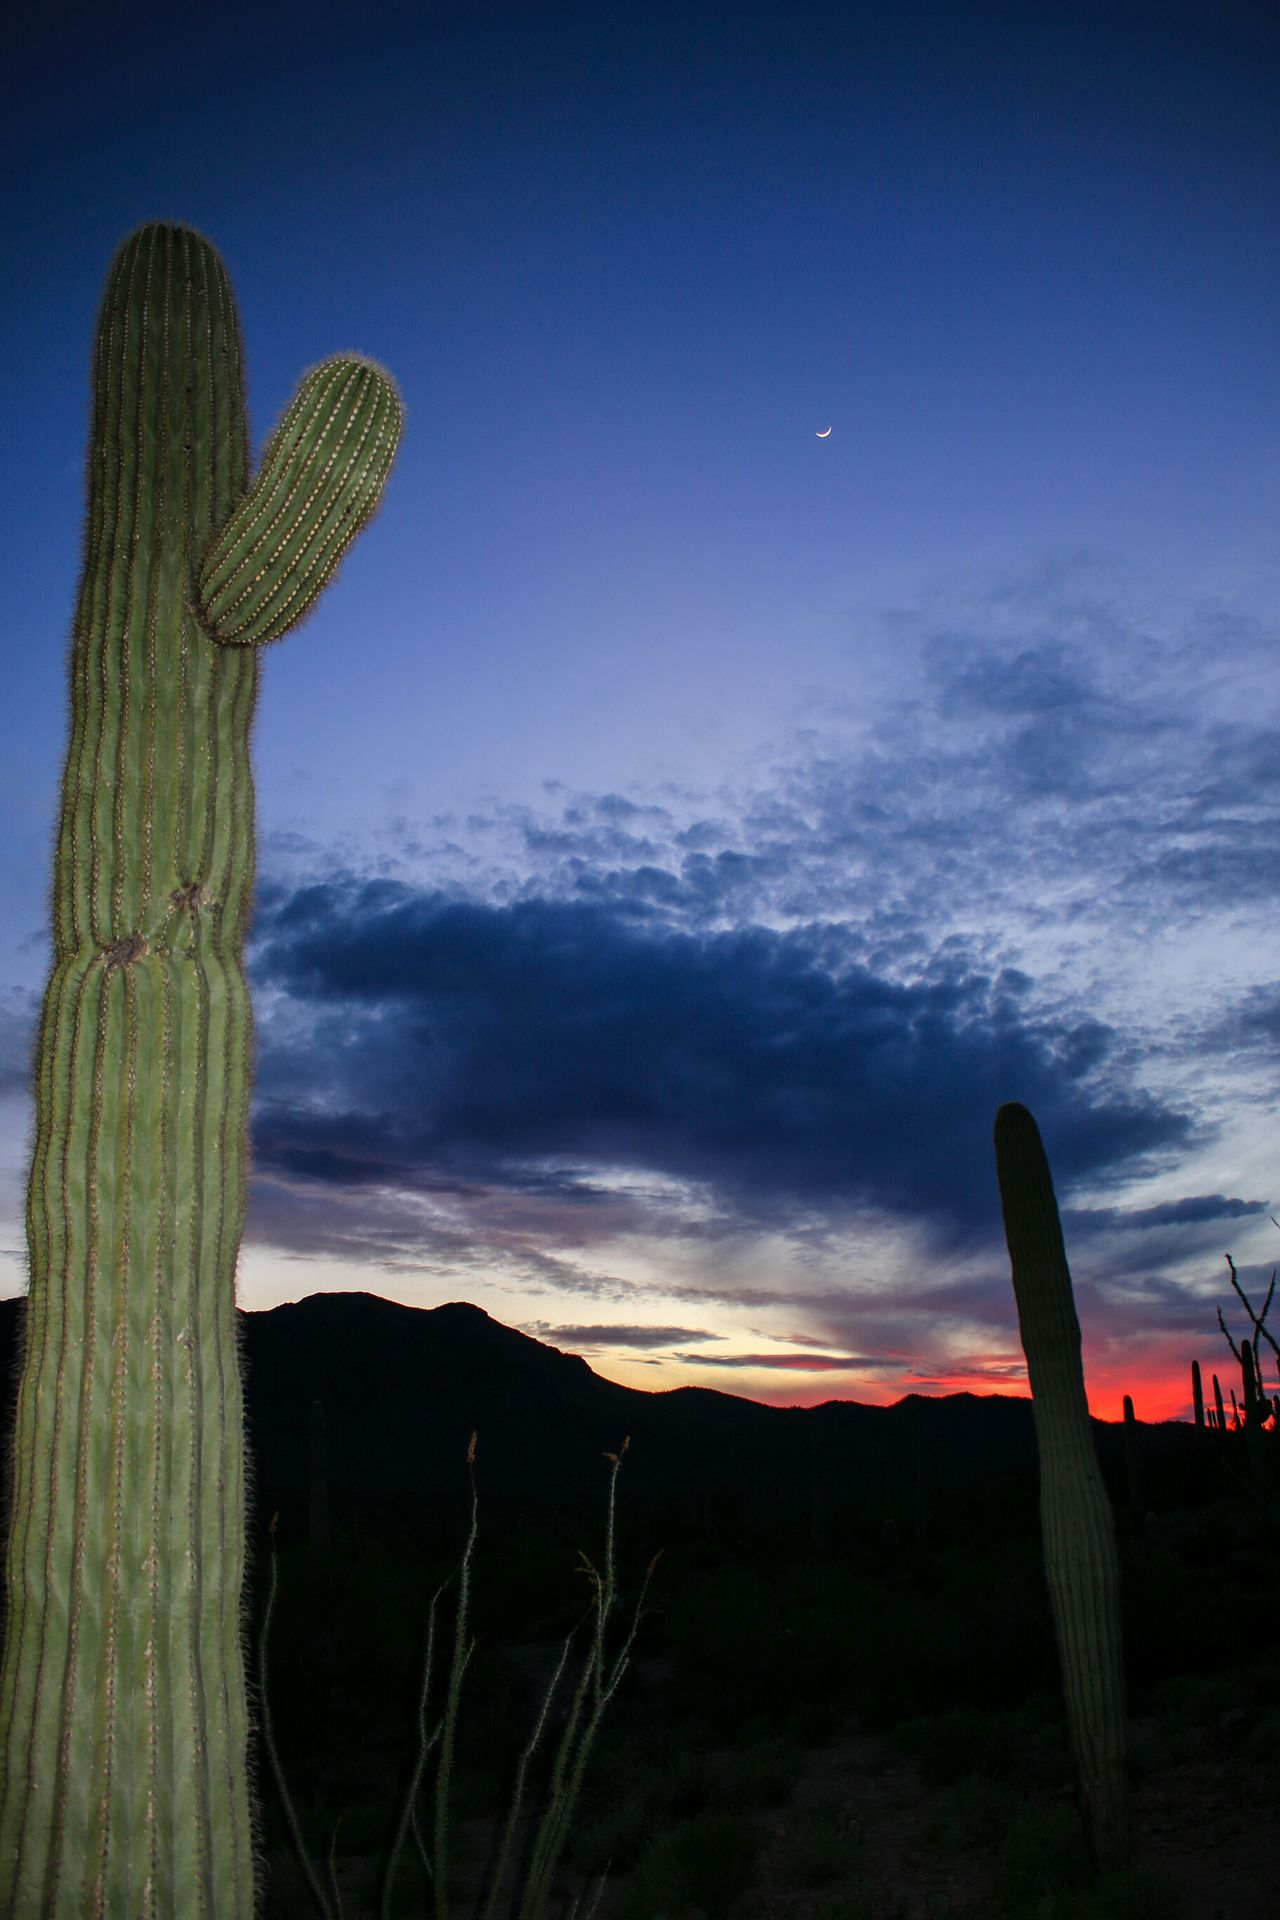 The saguaros and I waving hi to the moon. Moon Colorful Nature Pastel Sky Sunset Saguaro Wave Hello Woodin Ranch Photography Carnegiea Gigantea